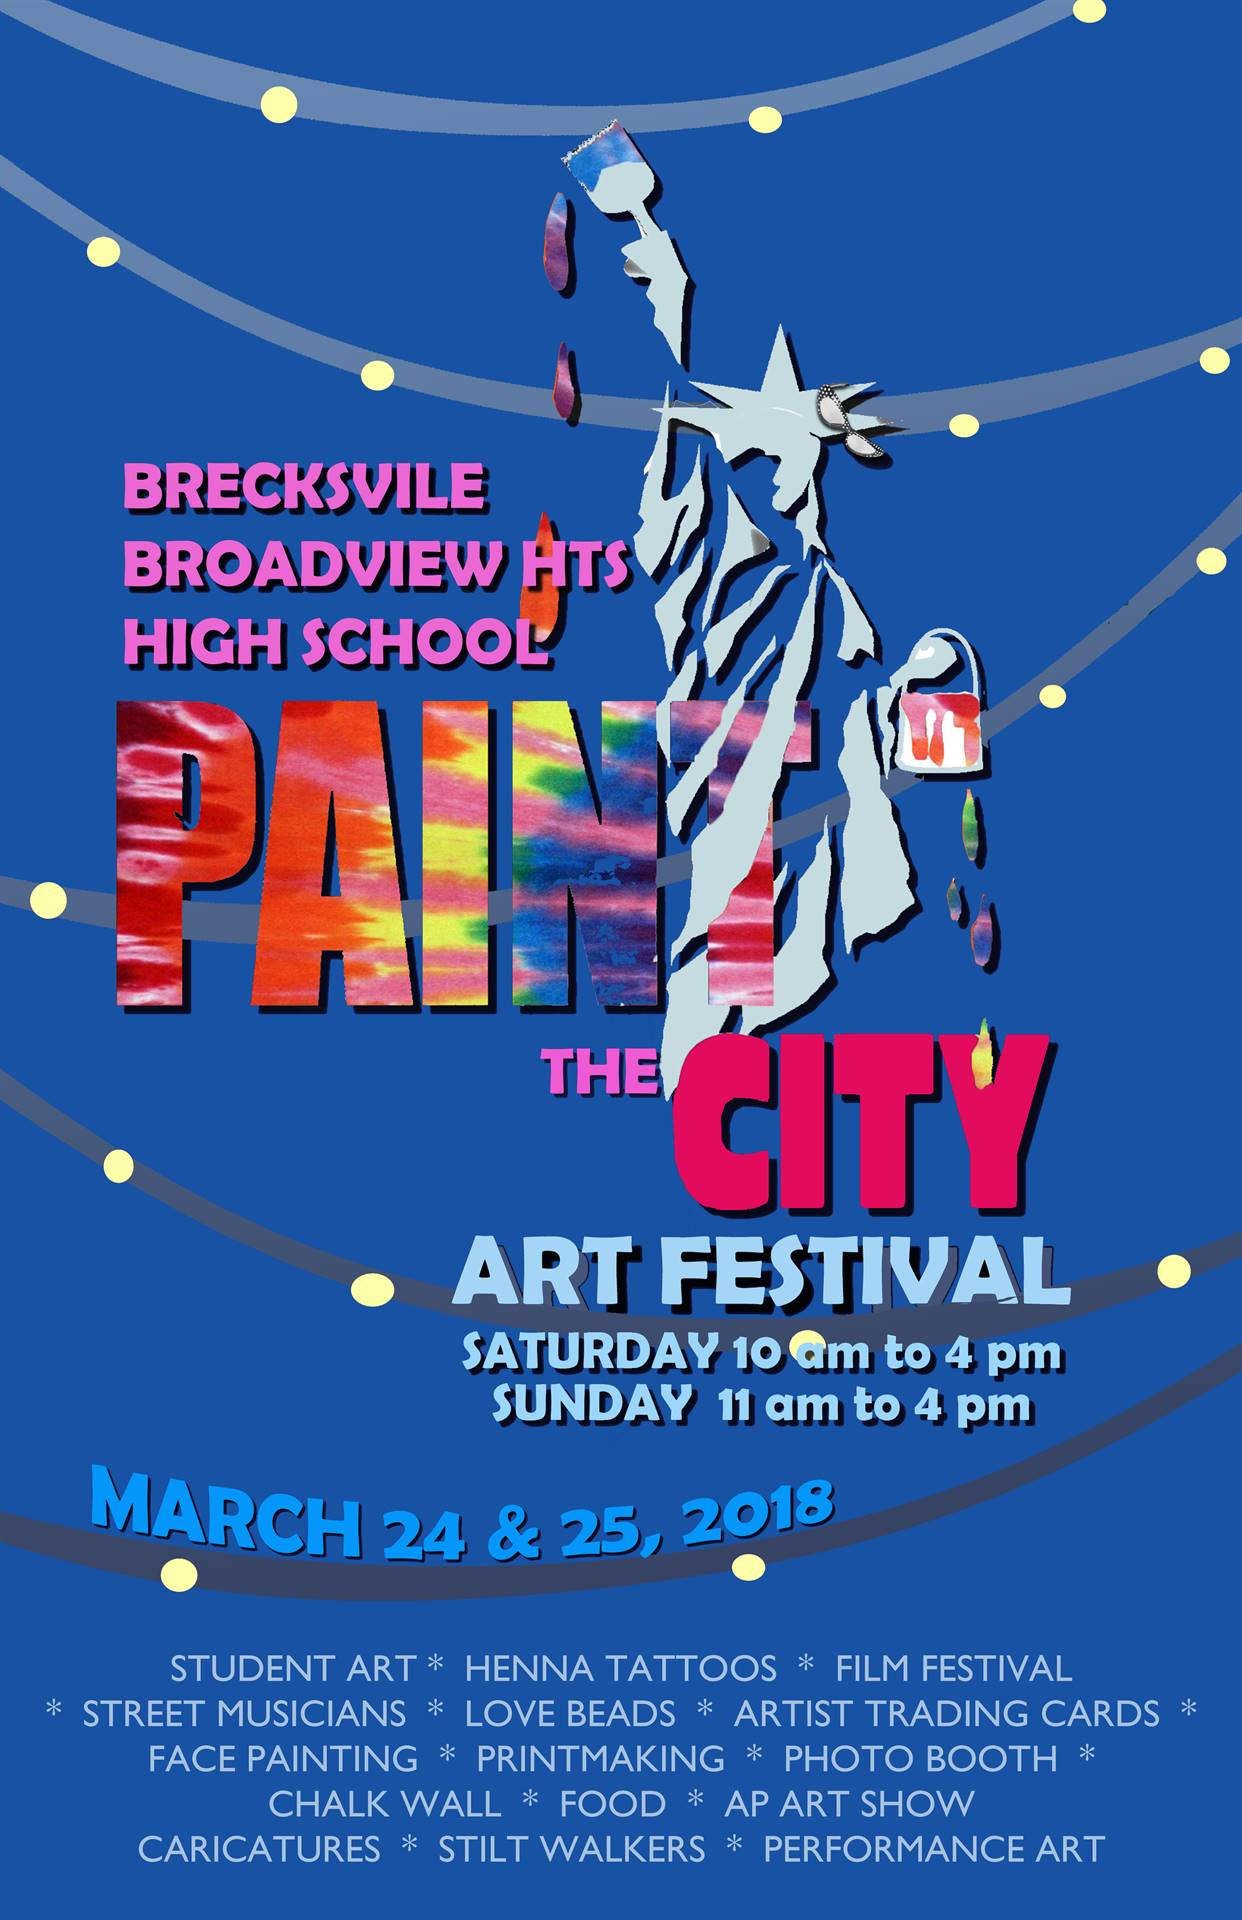 Art Fest Paint the City is on March 24 and 25th